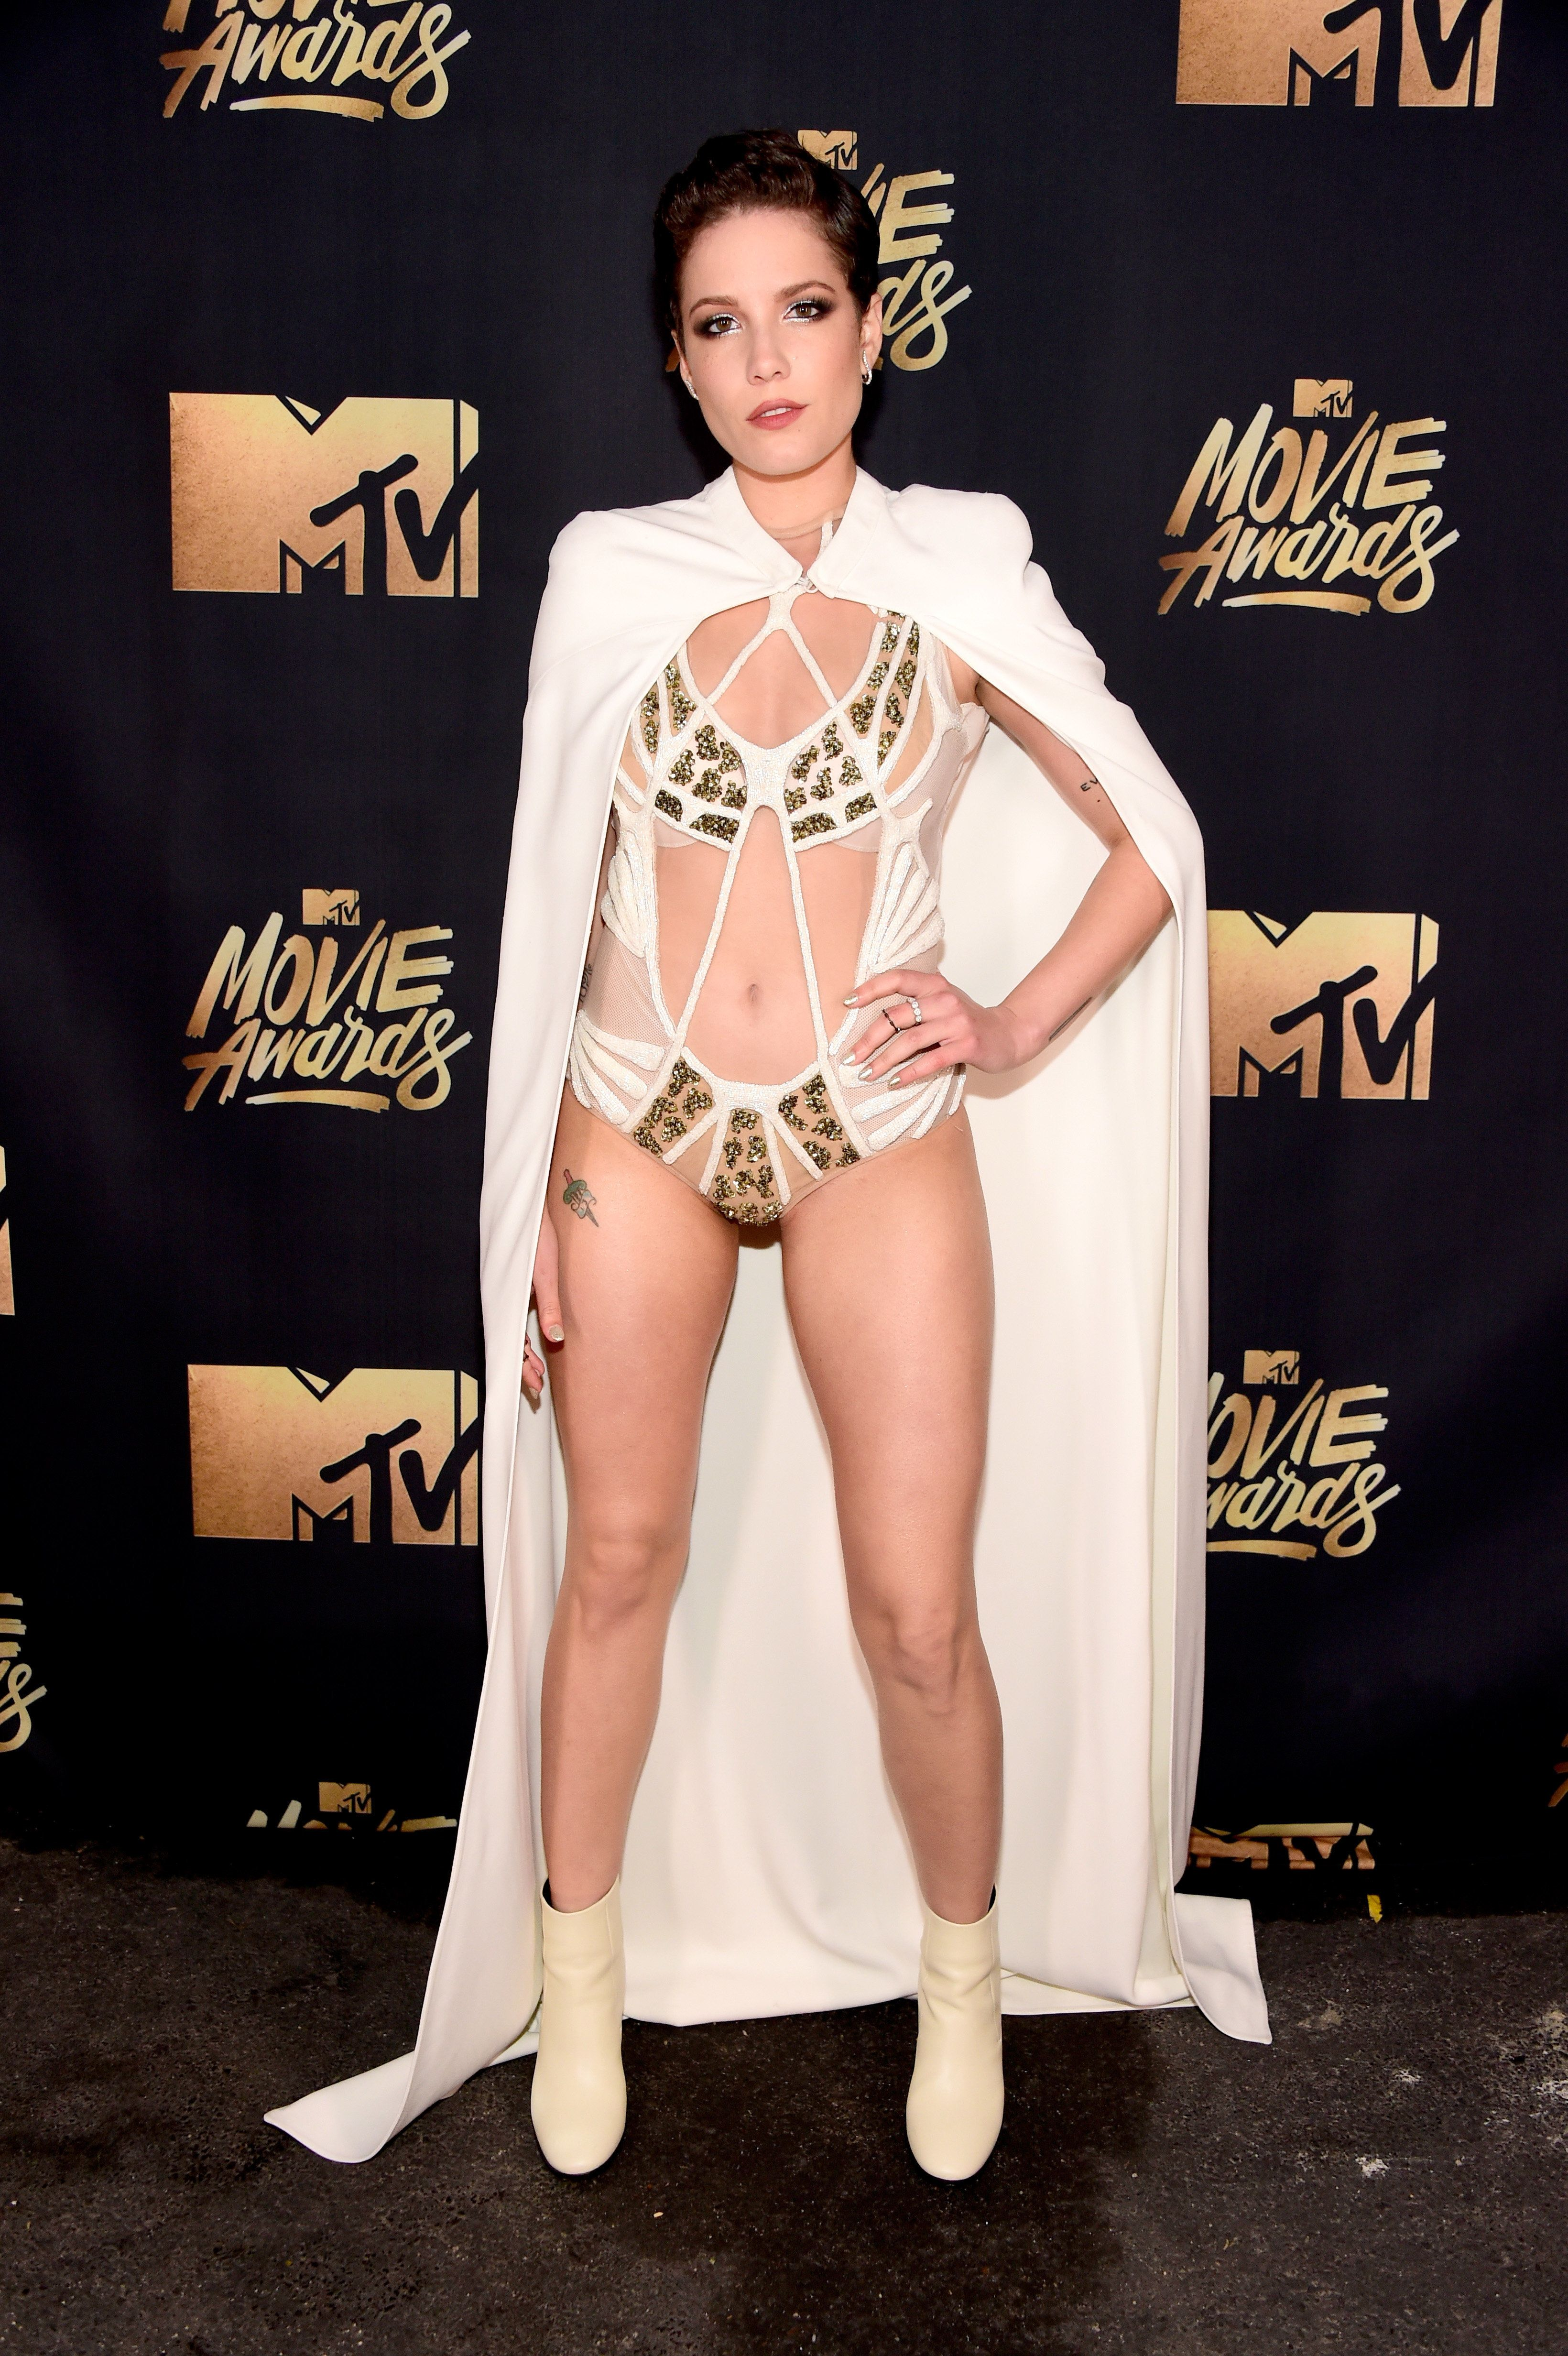 Backstage at the MTV Movie Awards on April 9 in Burbank, California.